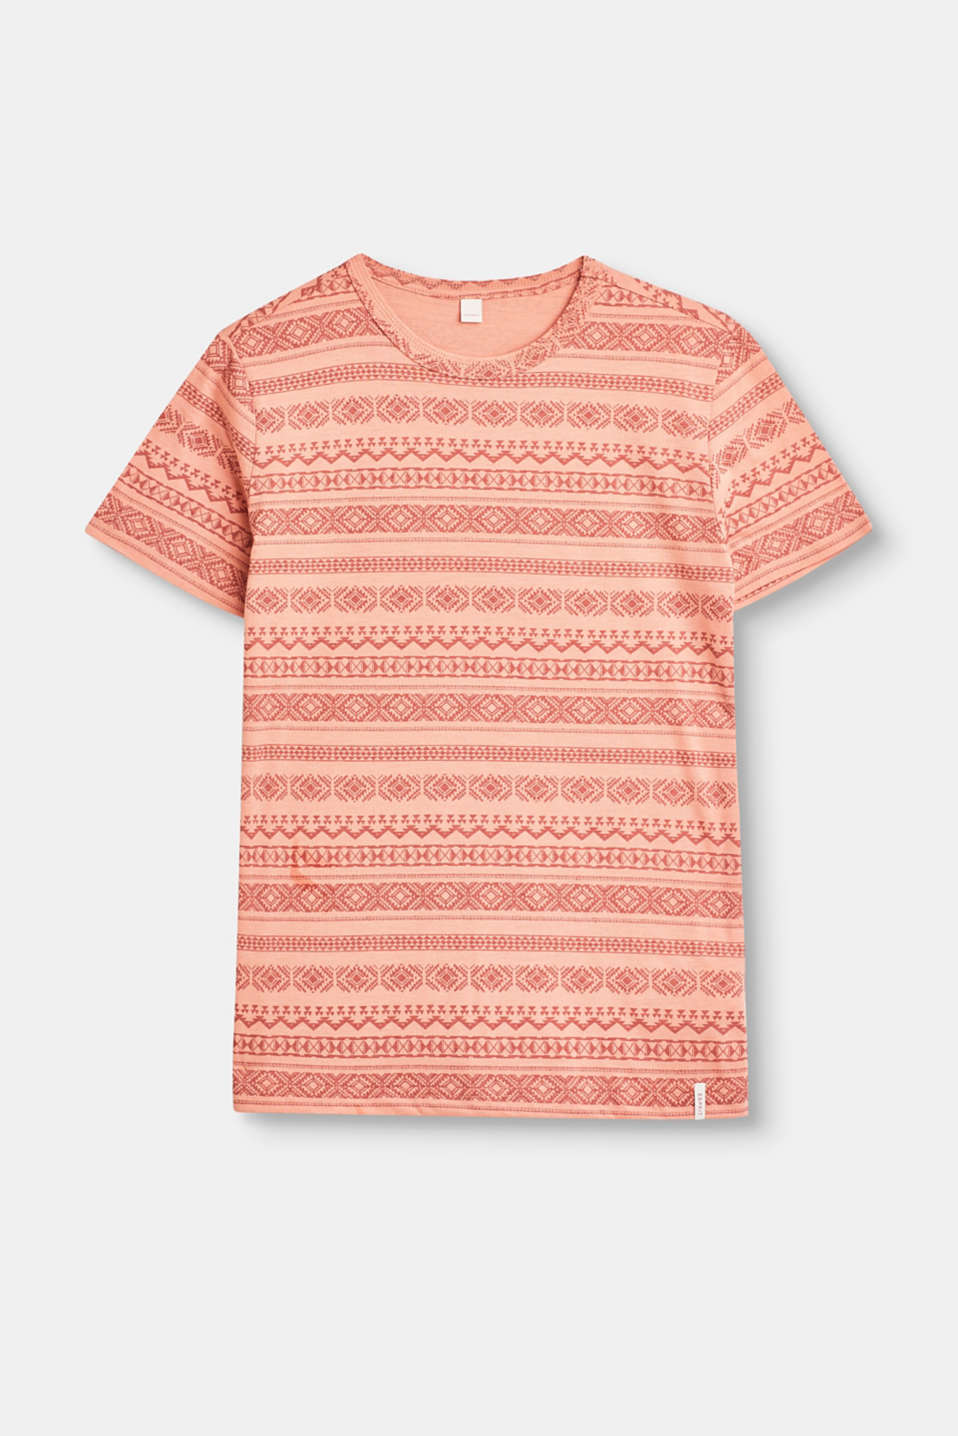 Esprit - Soft T-shirt made of blended cotton with a tribal print